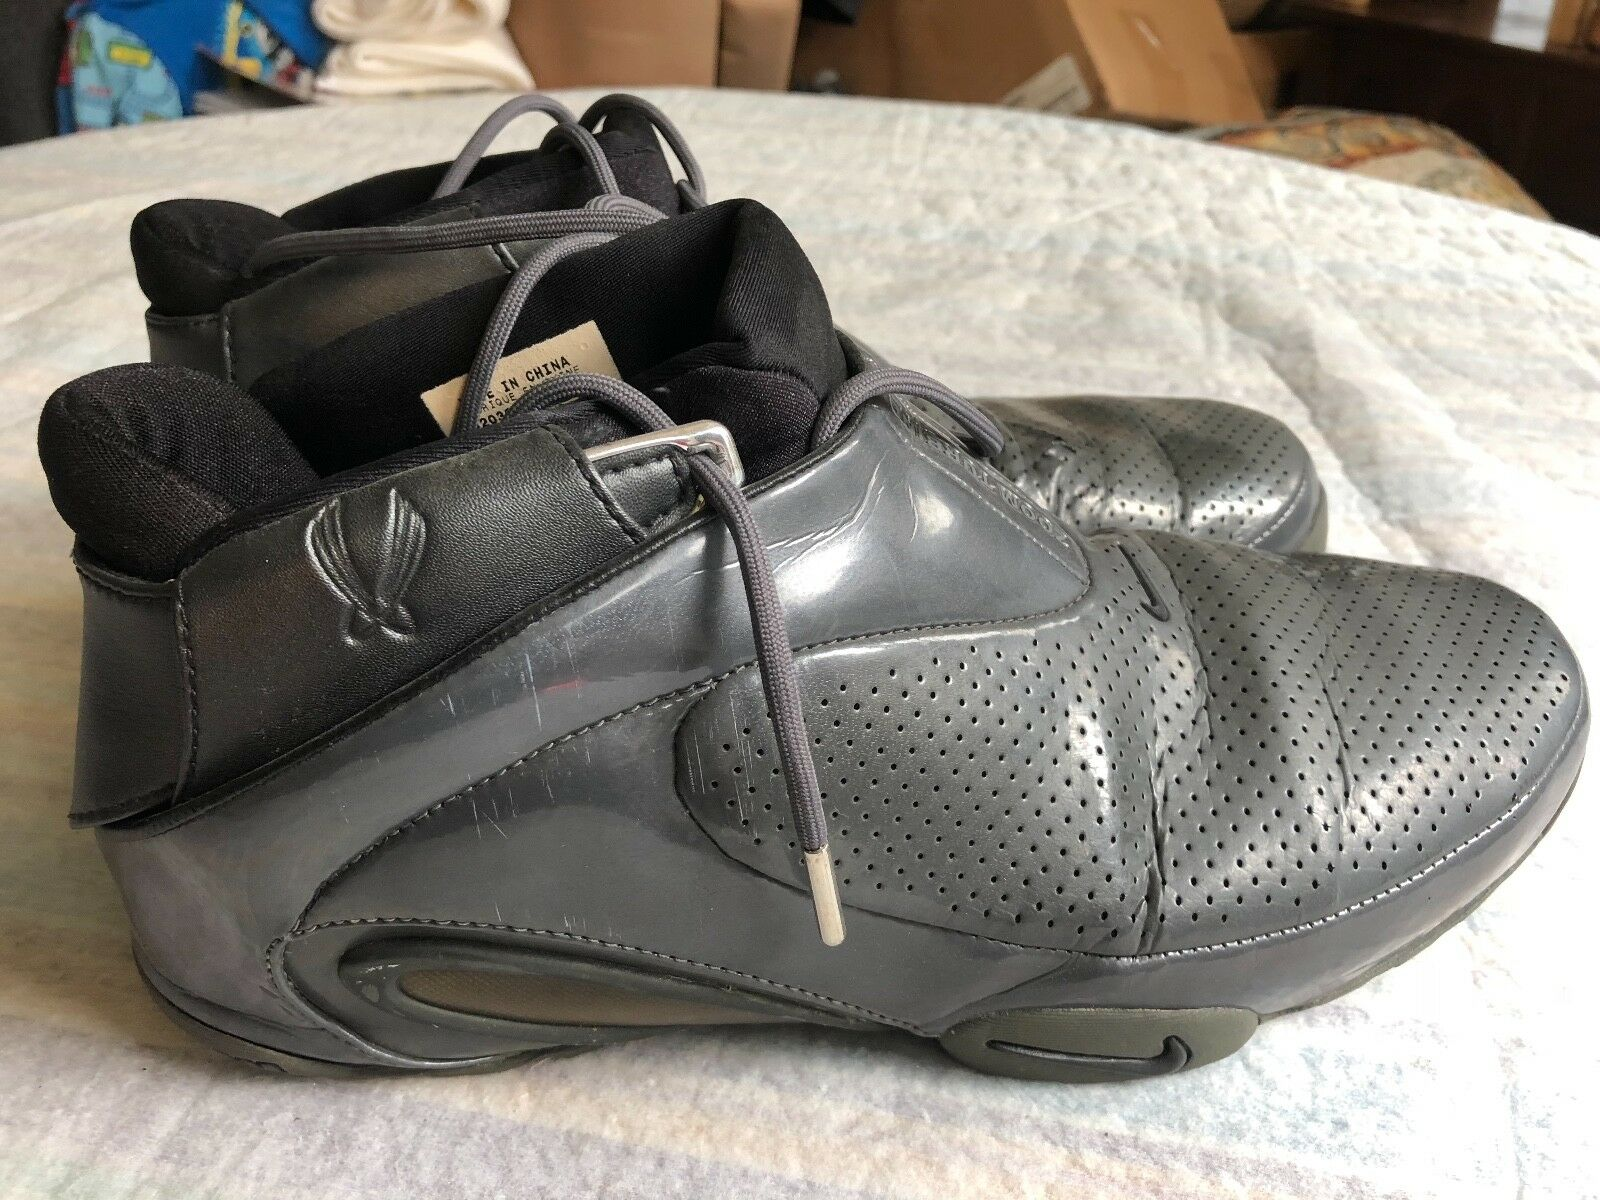 bask et - ball nike grise hommes nike ball taille 11,5 0acd8b